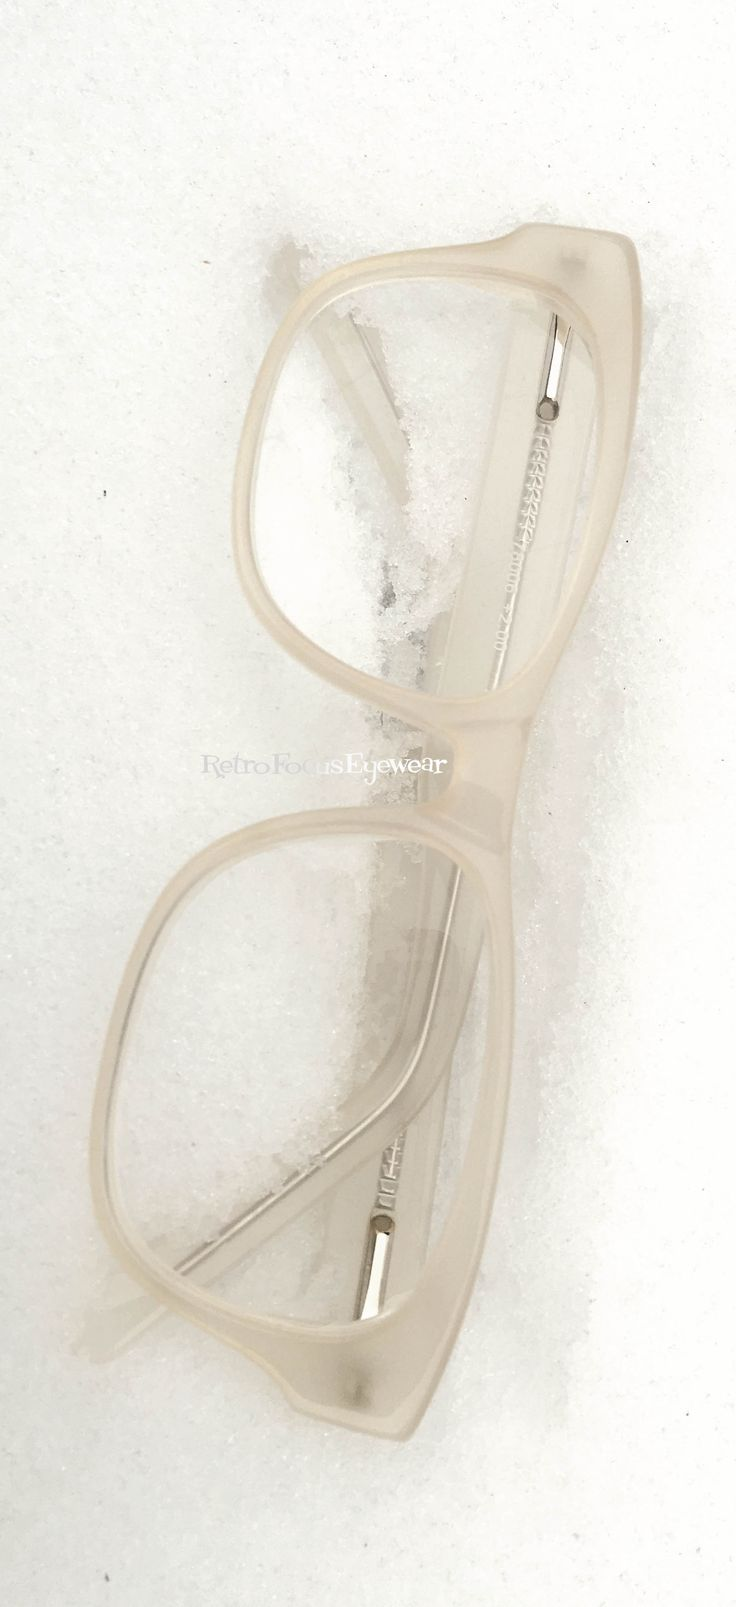 Milky white hipster hornrim reading glasses/eyeglass frames. Eyewear for the eccentric and unique.